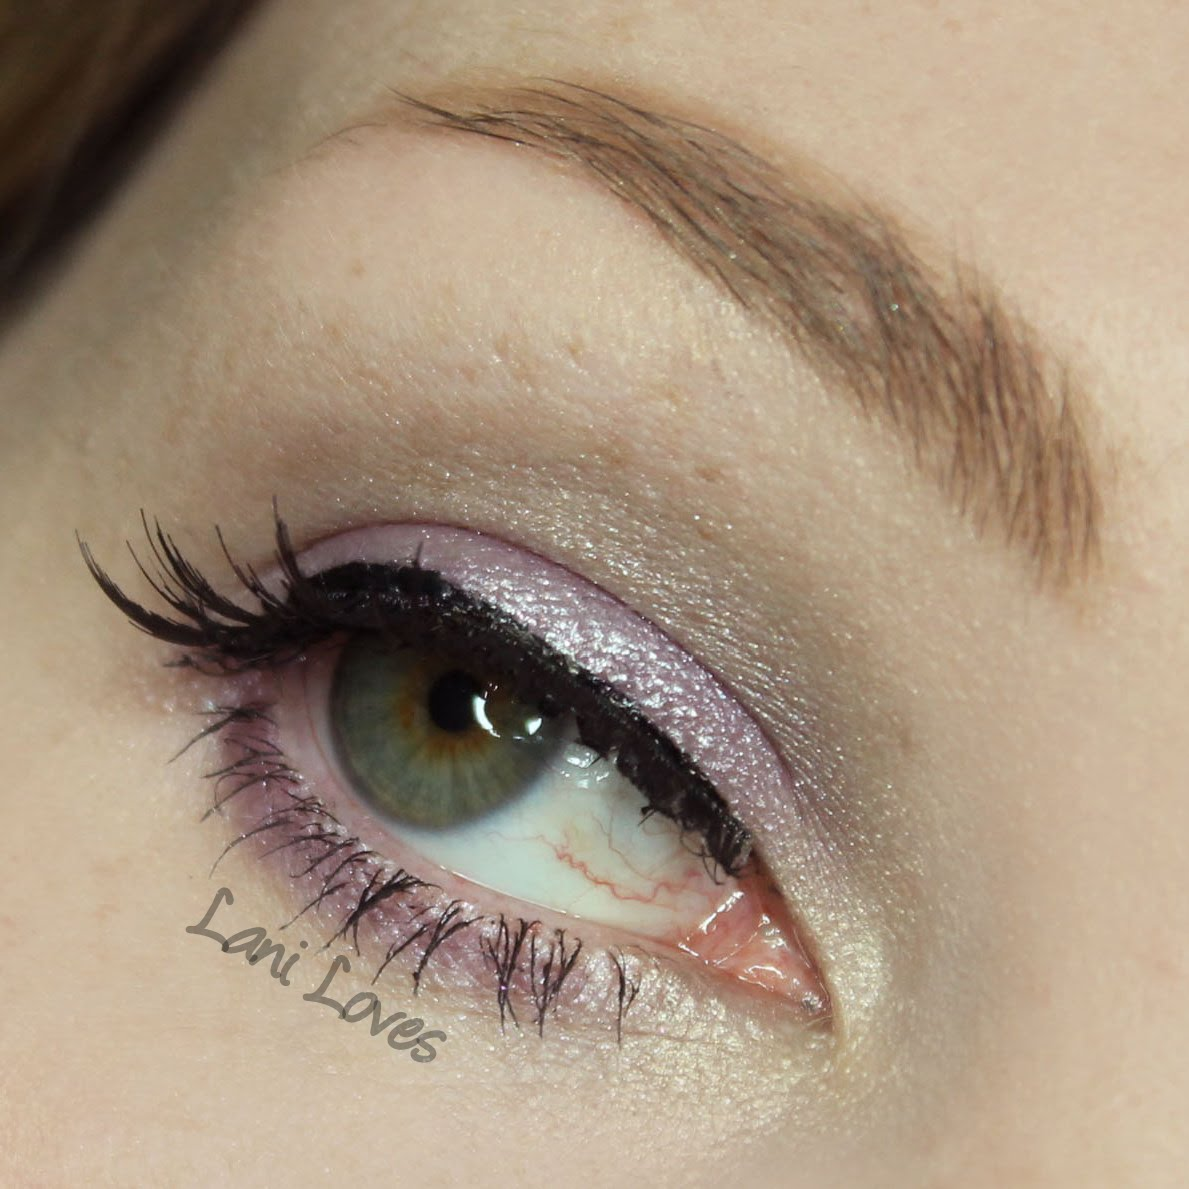 ZA Impact-Full Eyes Groovy Limited Edition Pure Silver eyeshadow palette swatches & review